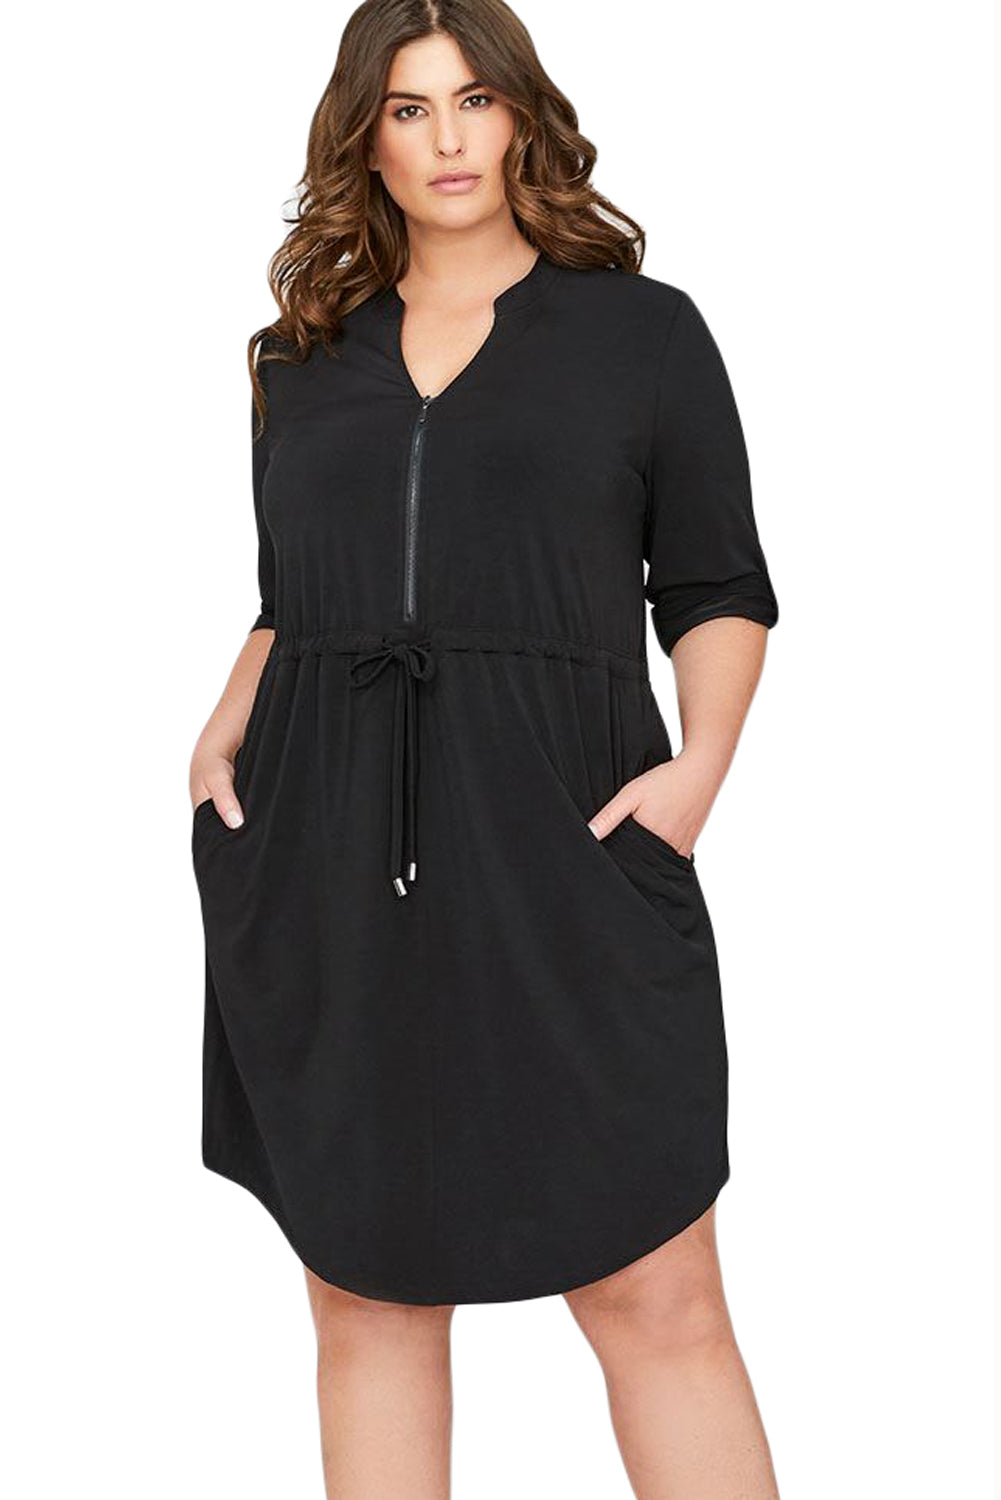 Black 3/4 Sleeve Plus Size Casual Jersey Dress